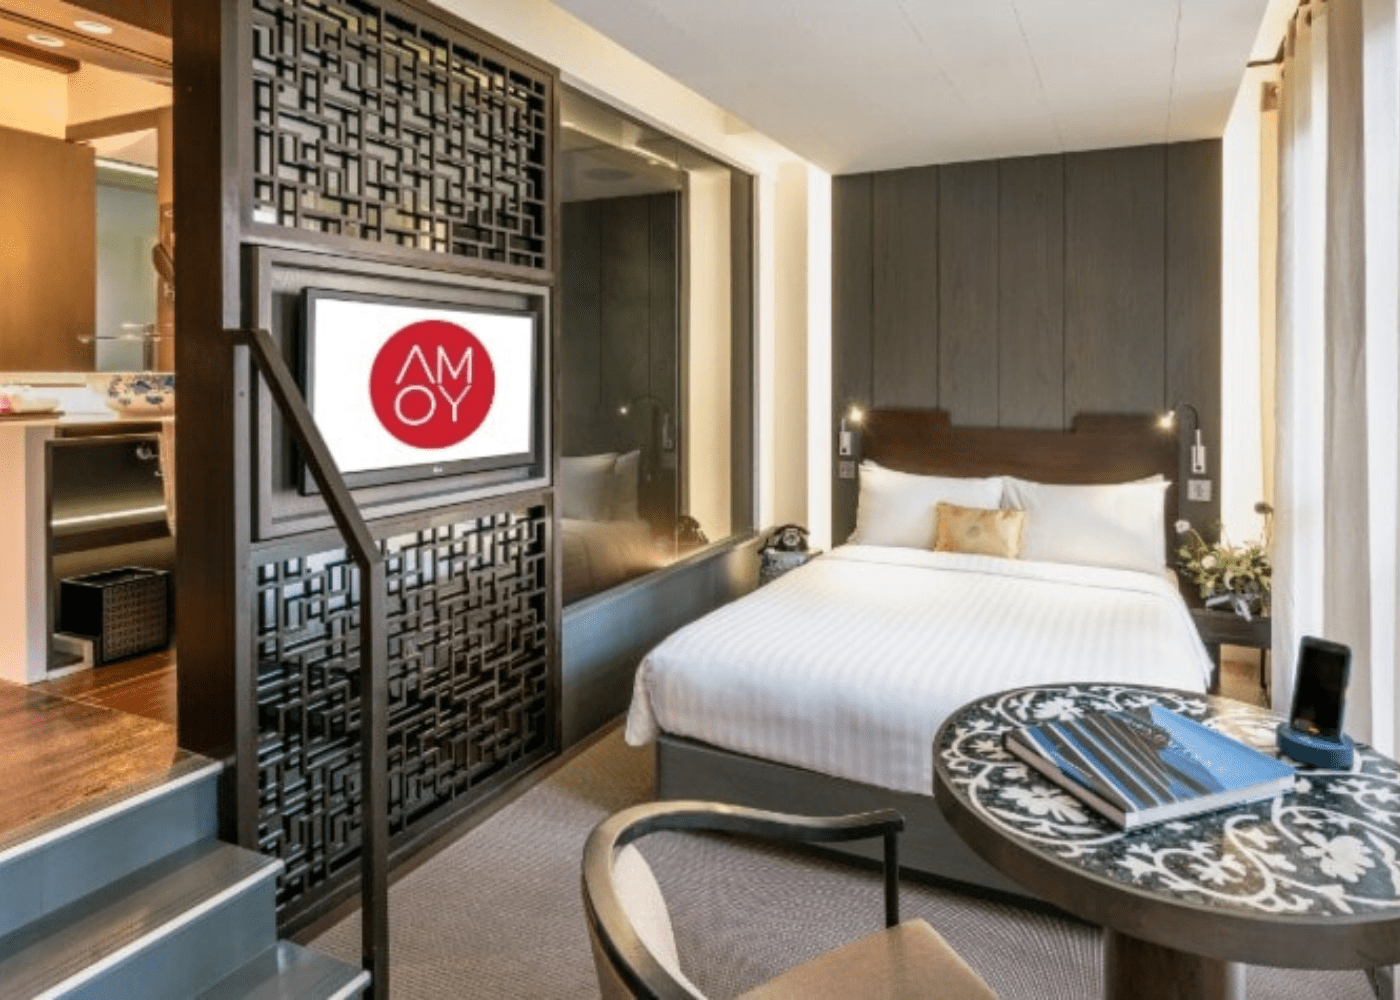 Amoy Hotel | Best boutique hotels in Singapore